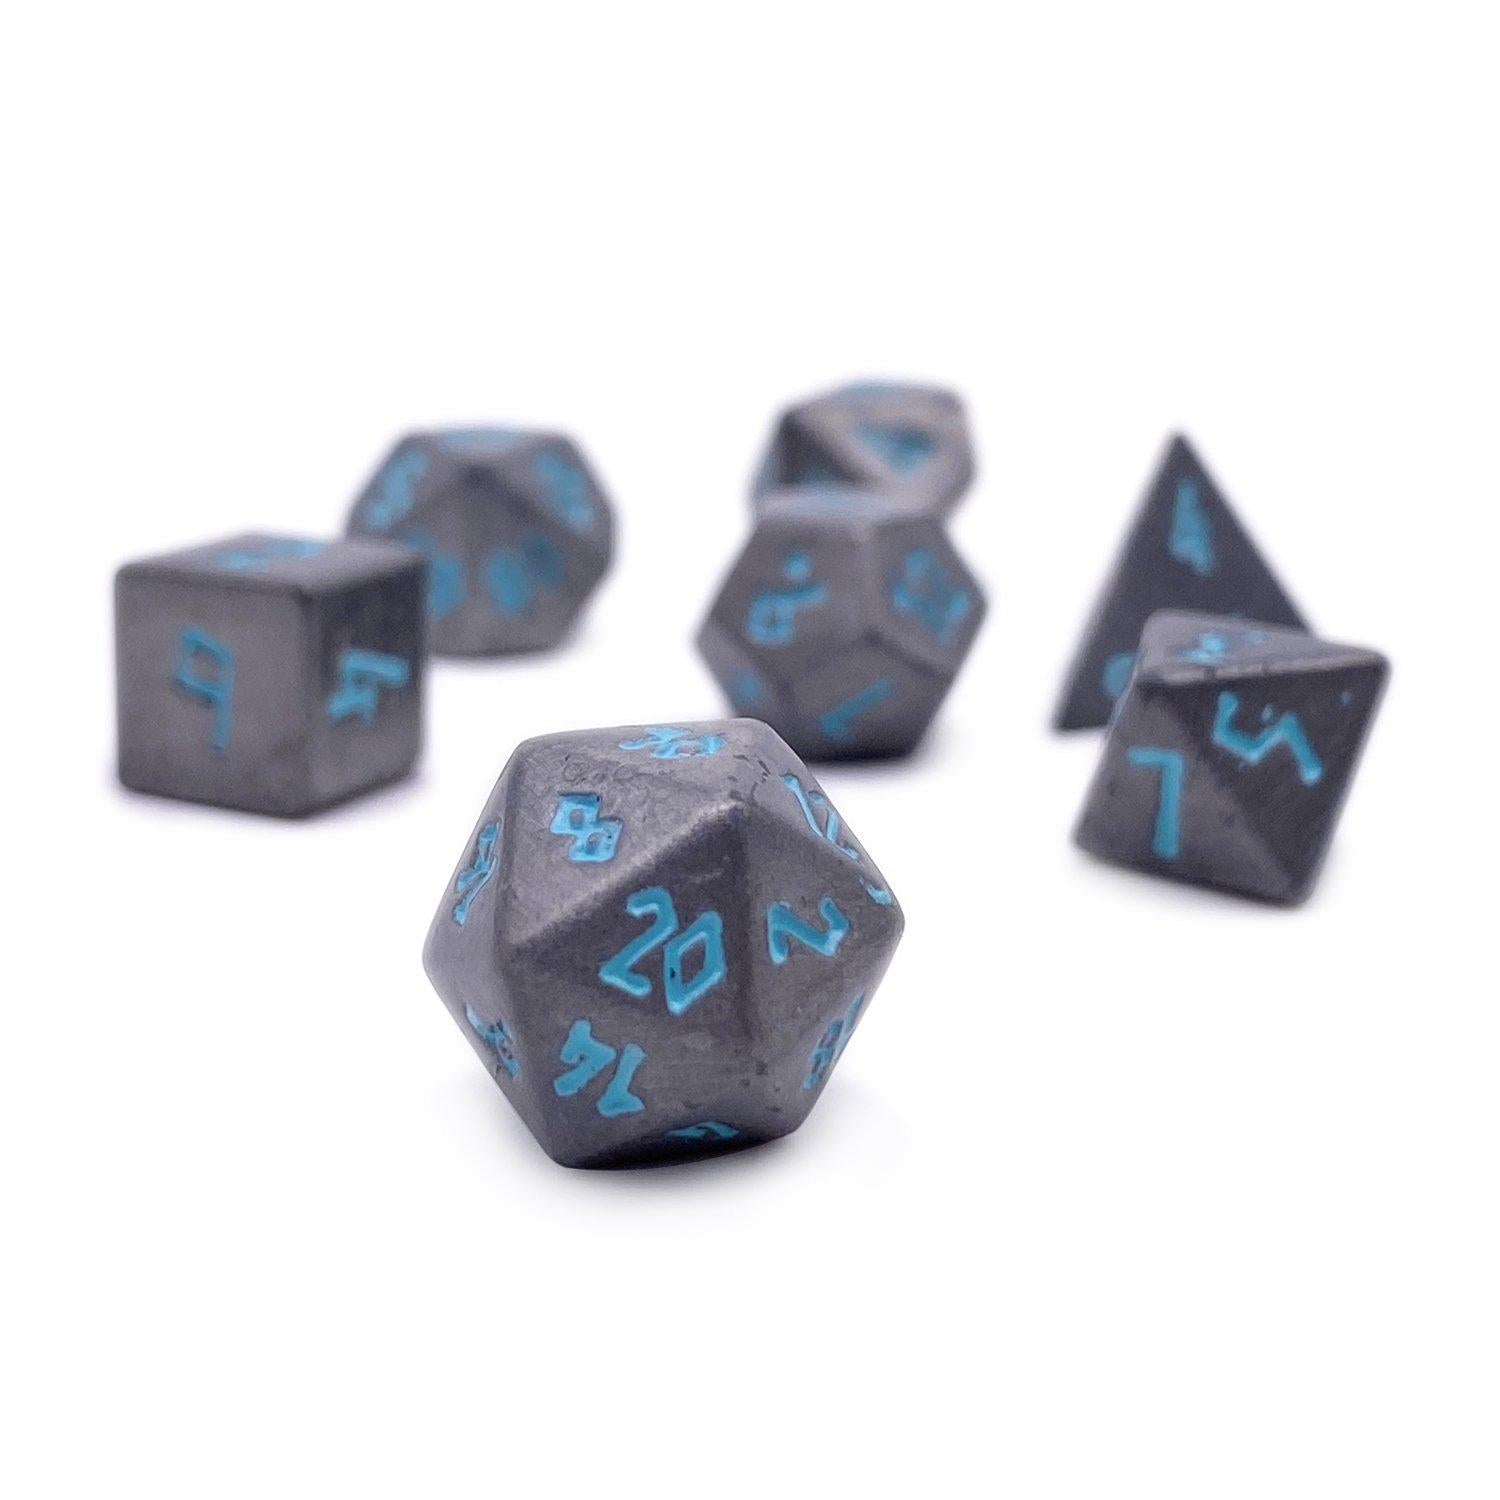 Spellbound Pebble ™ Dice - 10mm Alloy Mini Polyhedral Dice Set